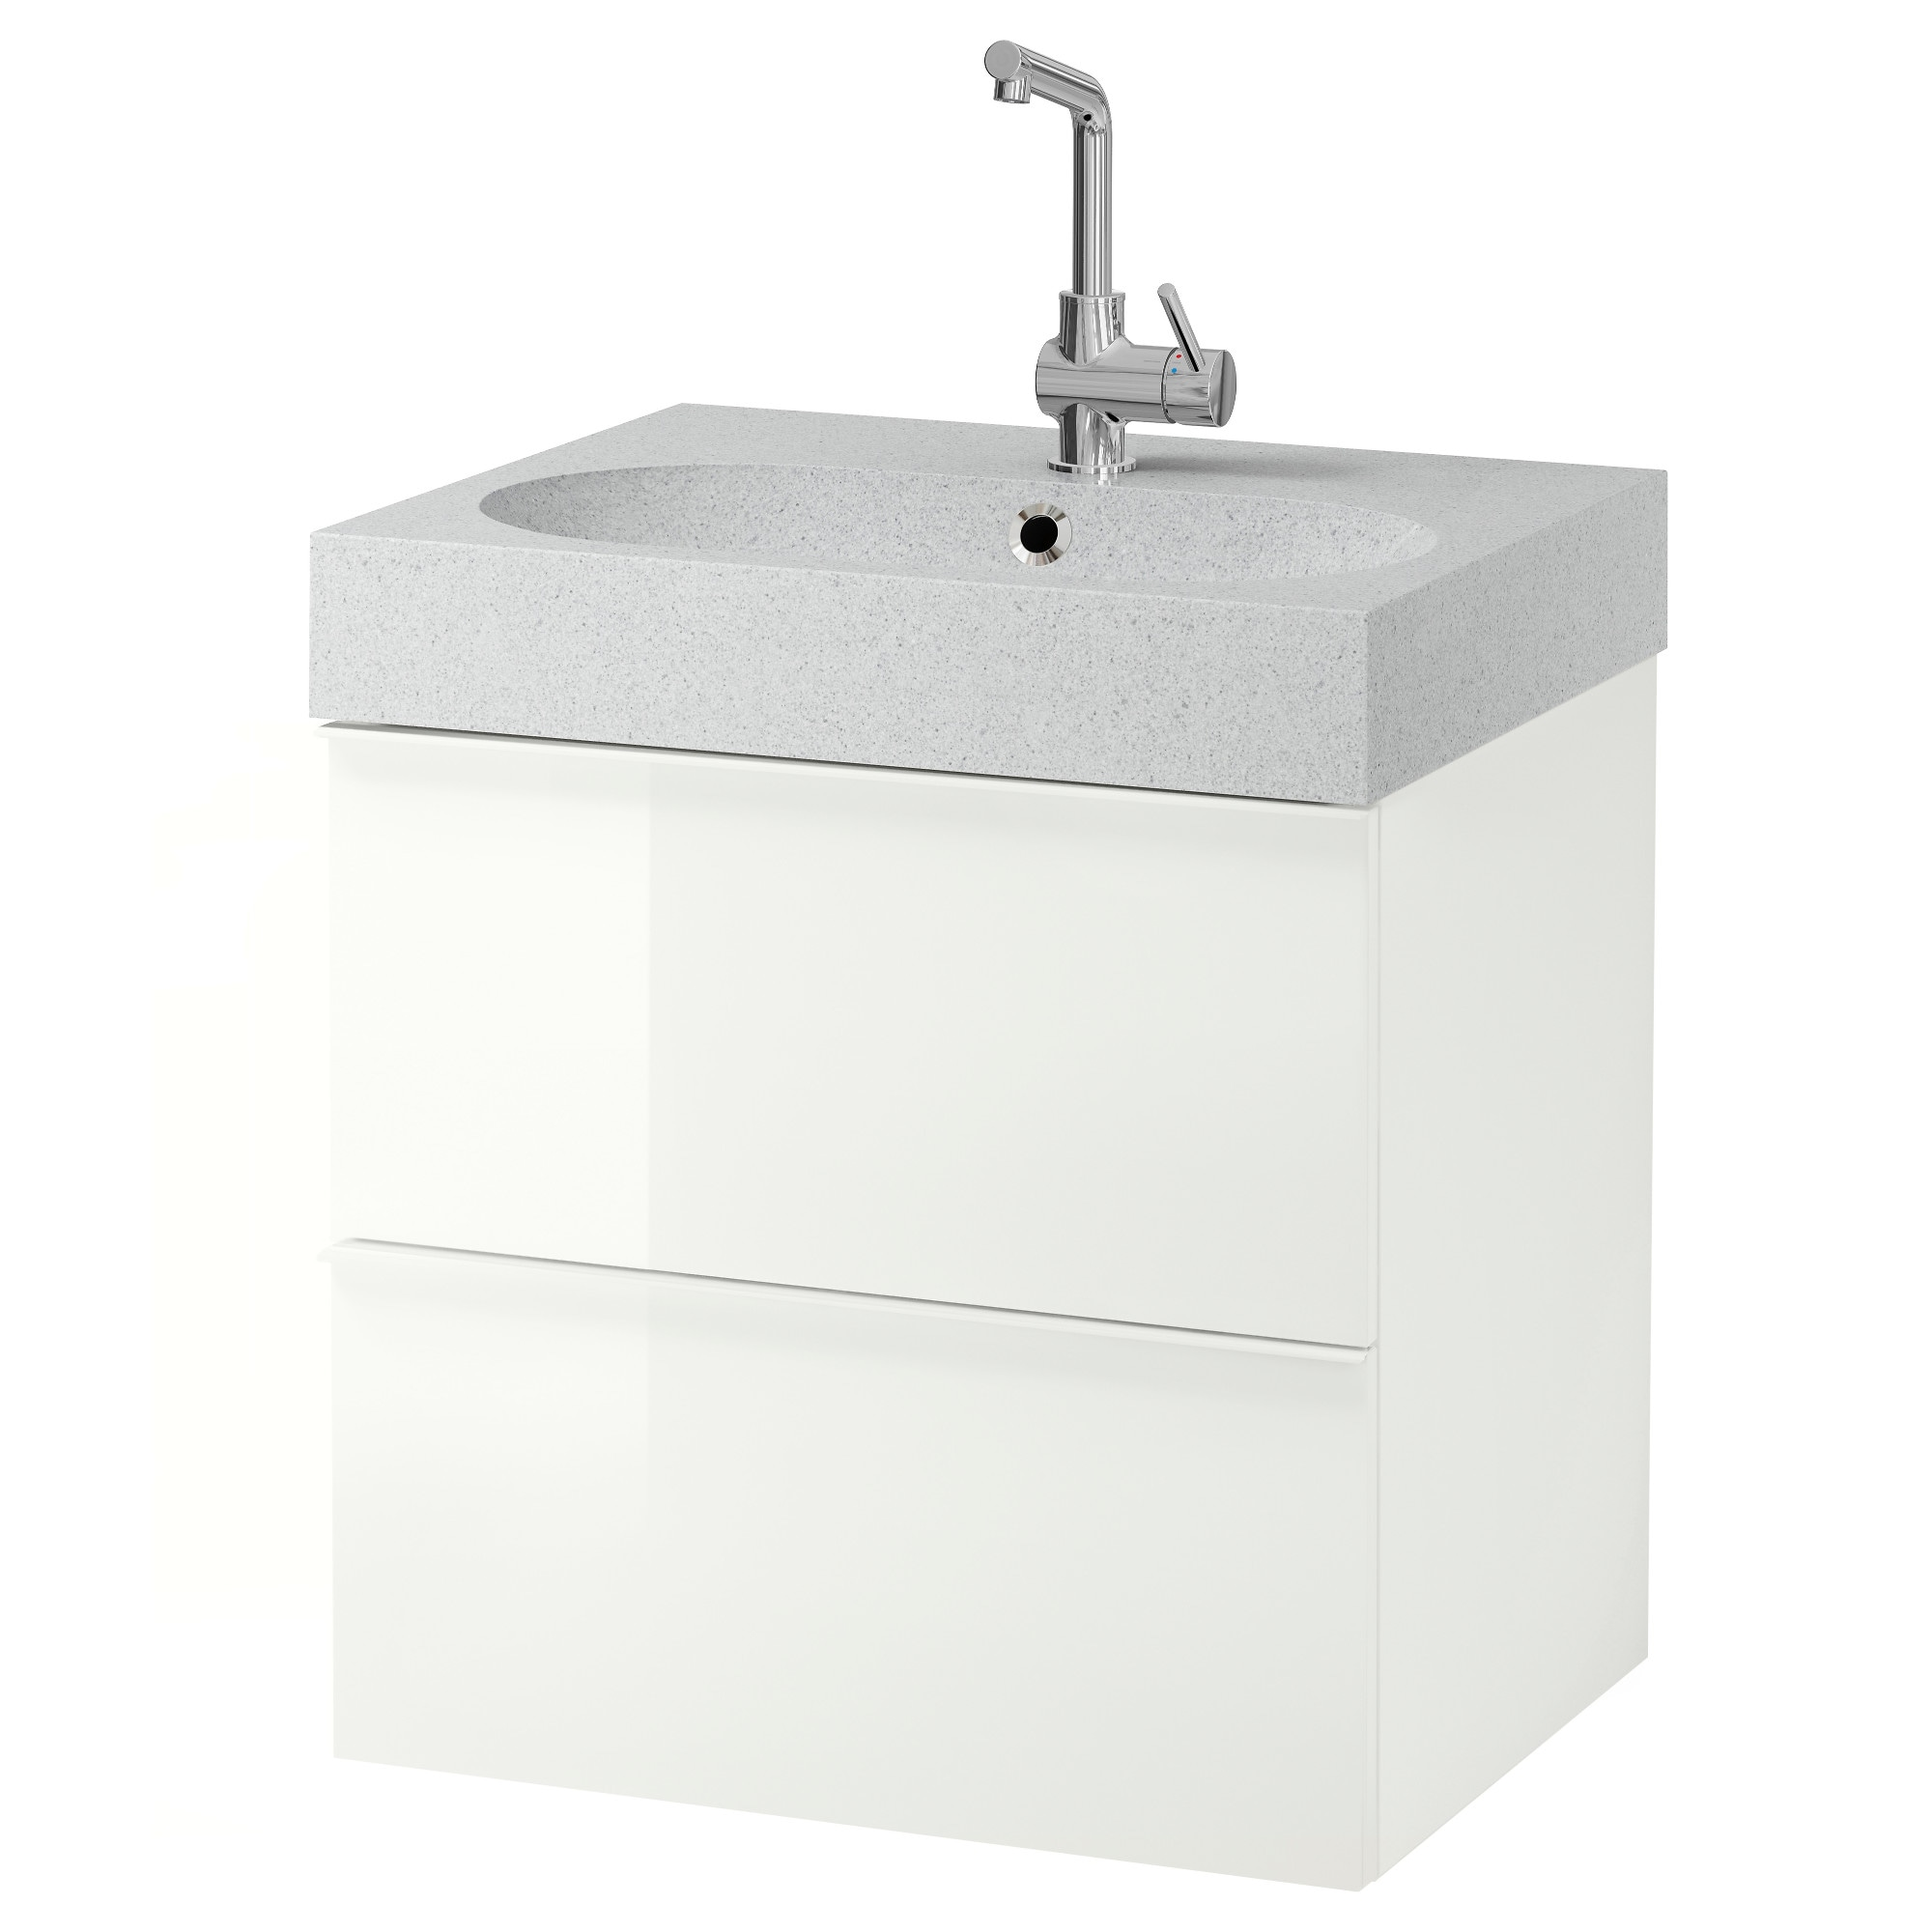 Godmorgon Br Viken Sink Cabinet With 2 Drawers High Gloss White Light Gray Width